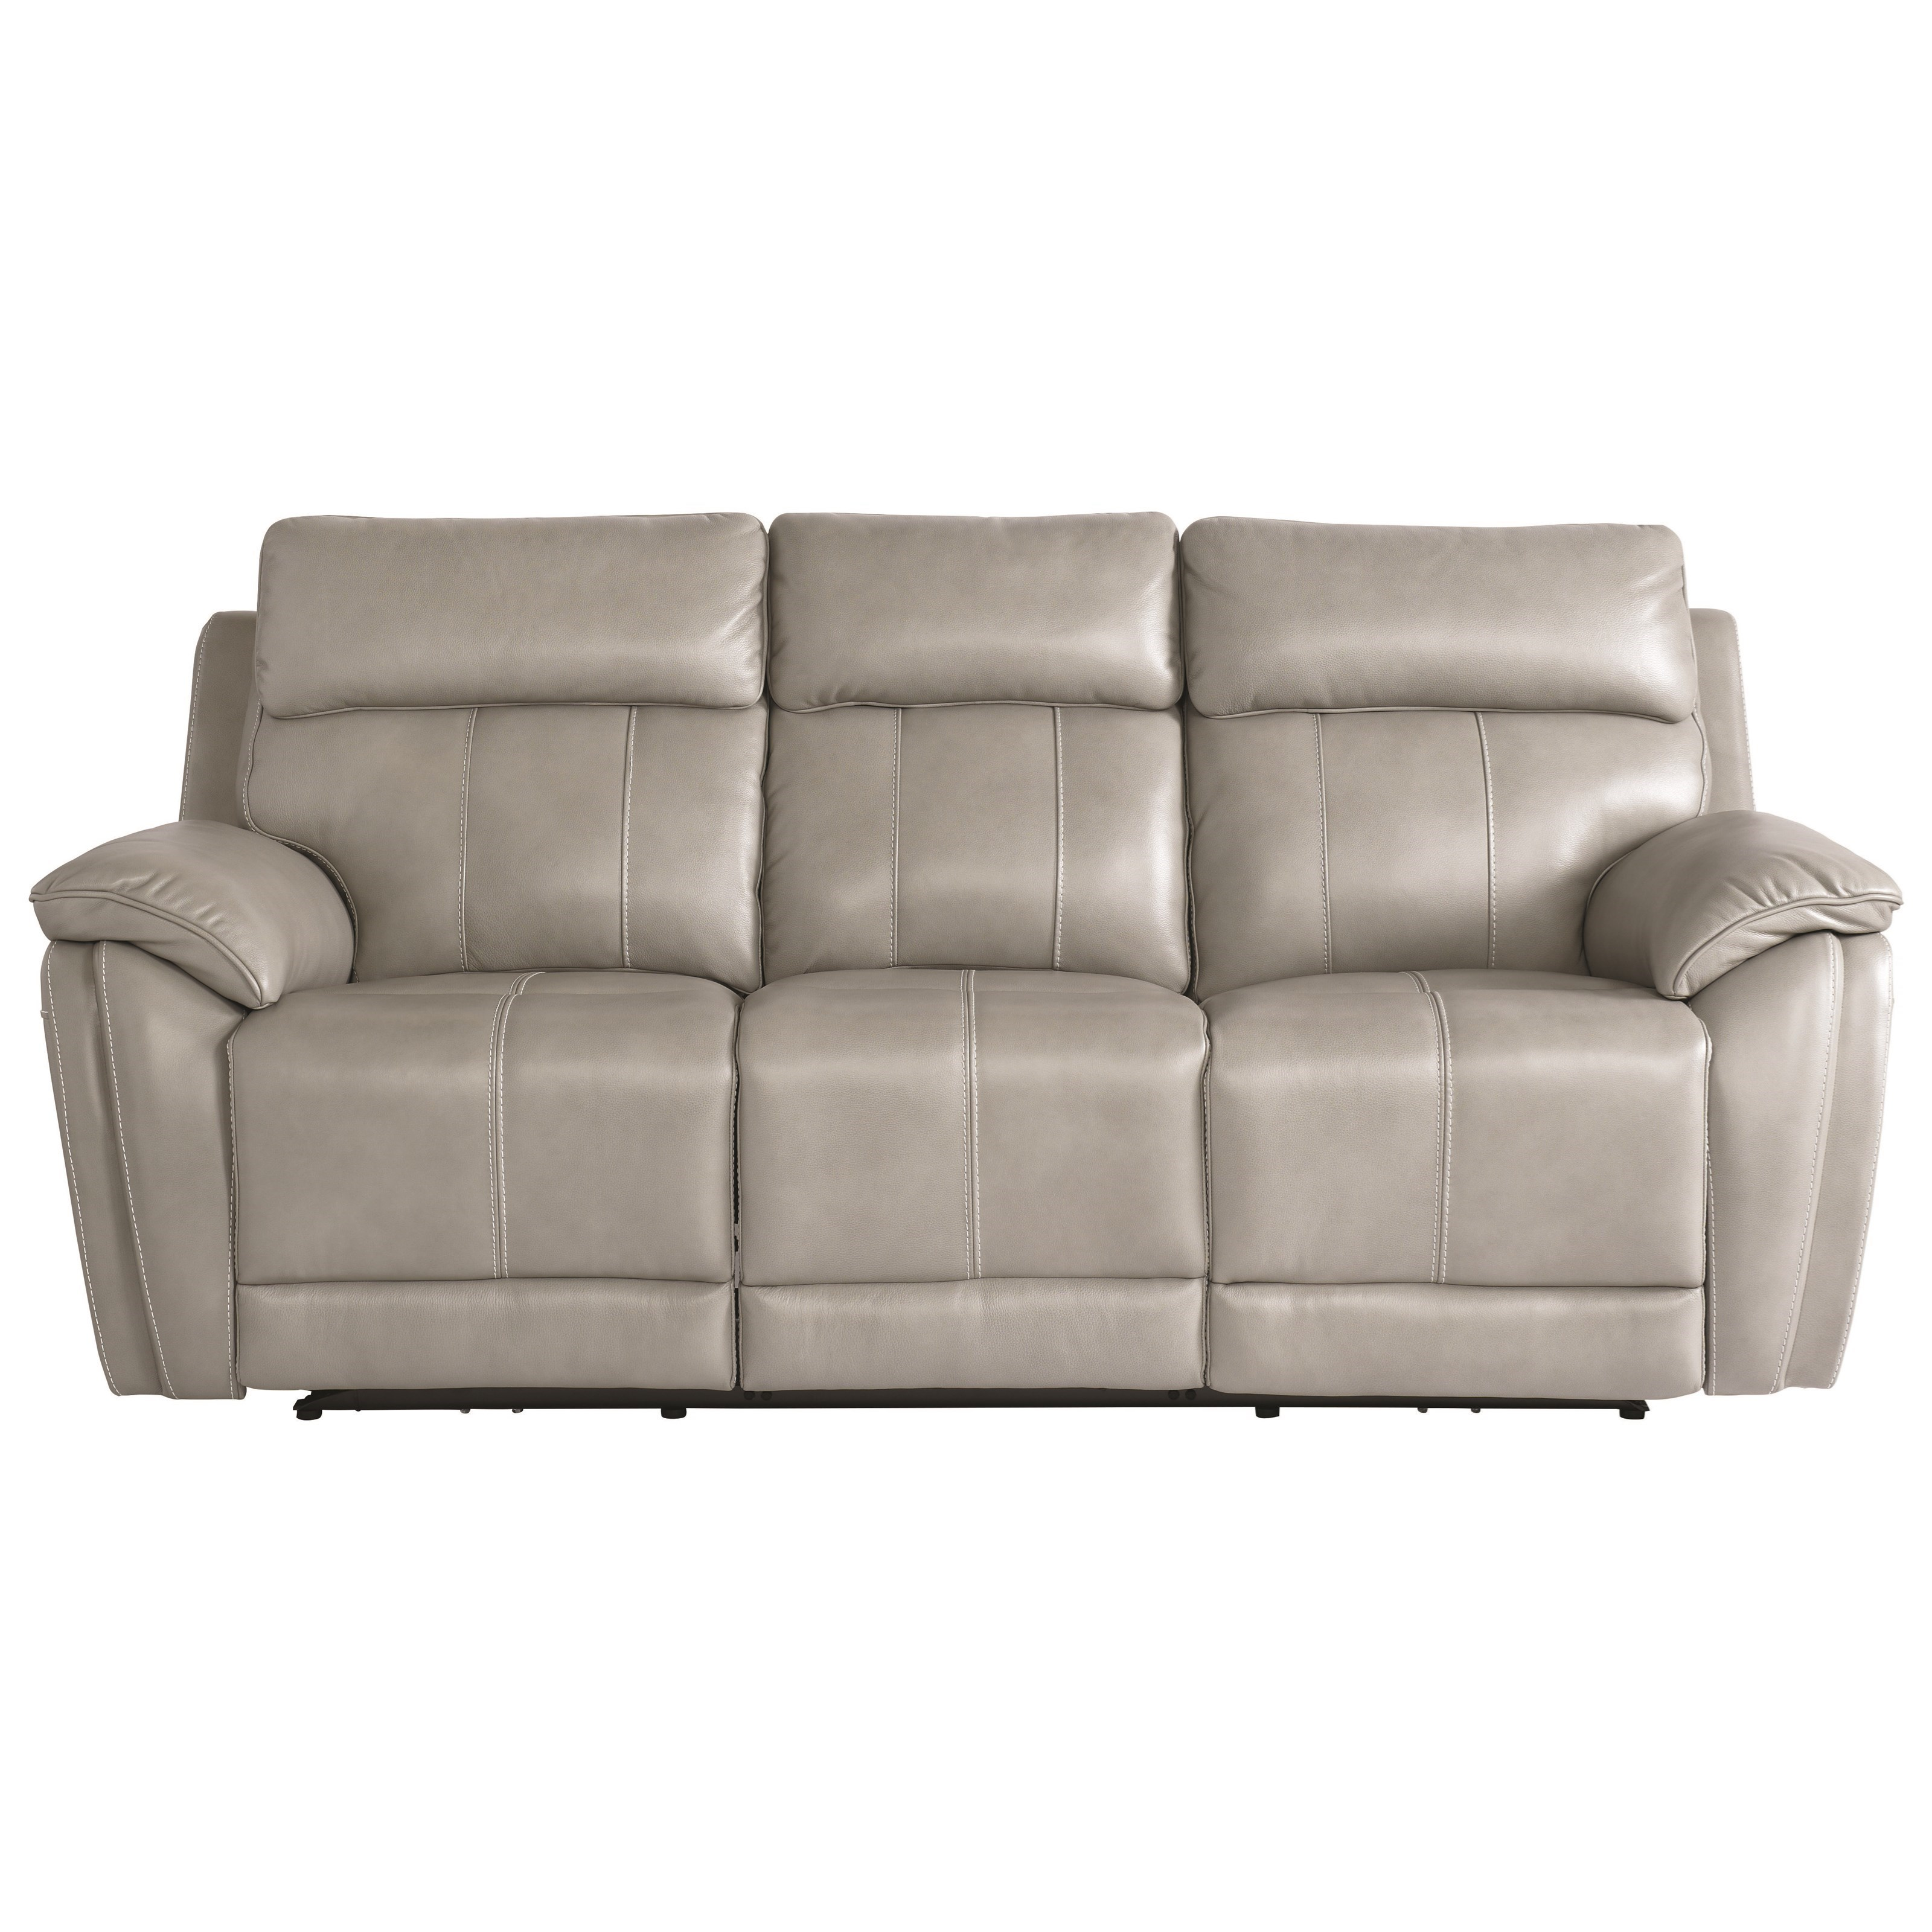 Club Level - Levitate Motion Sofa by Bassett at Bassett of Cool Springs